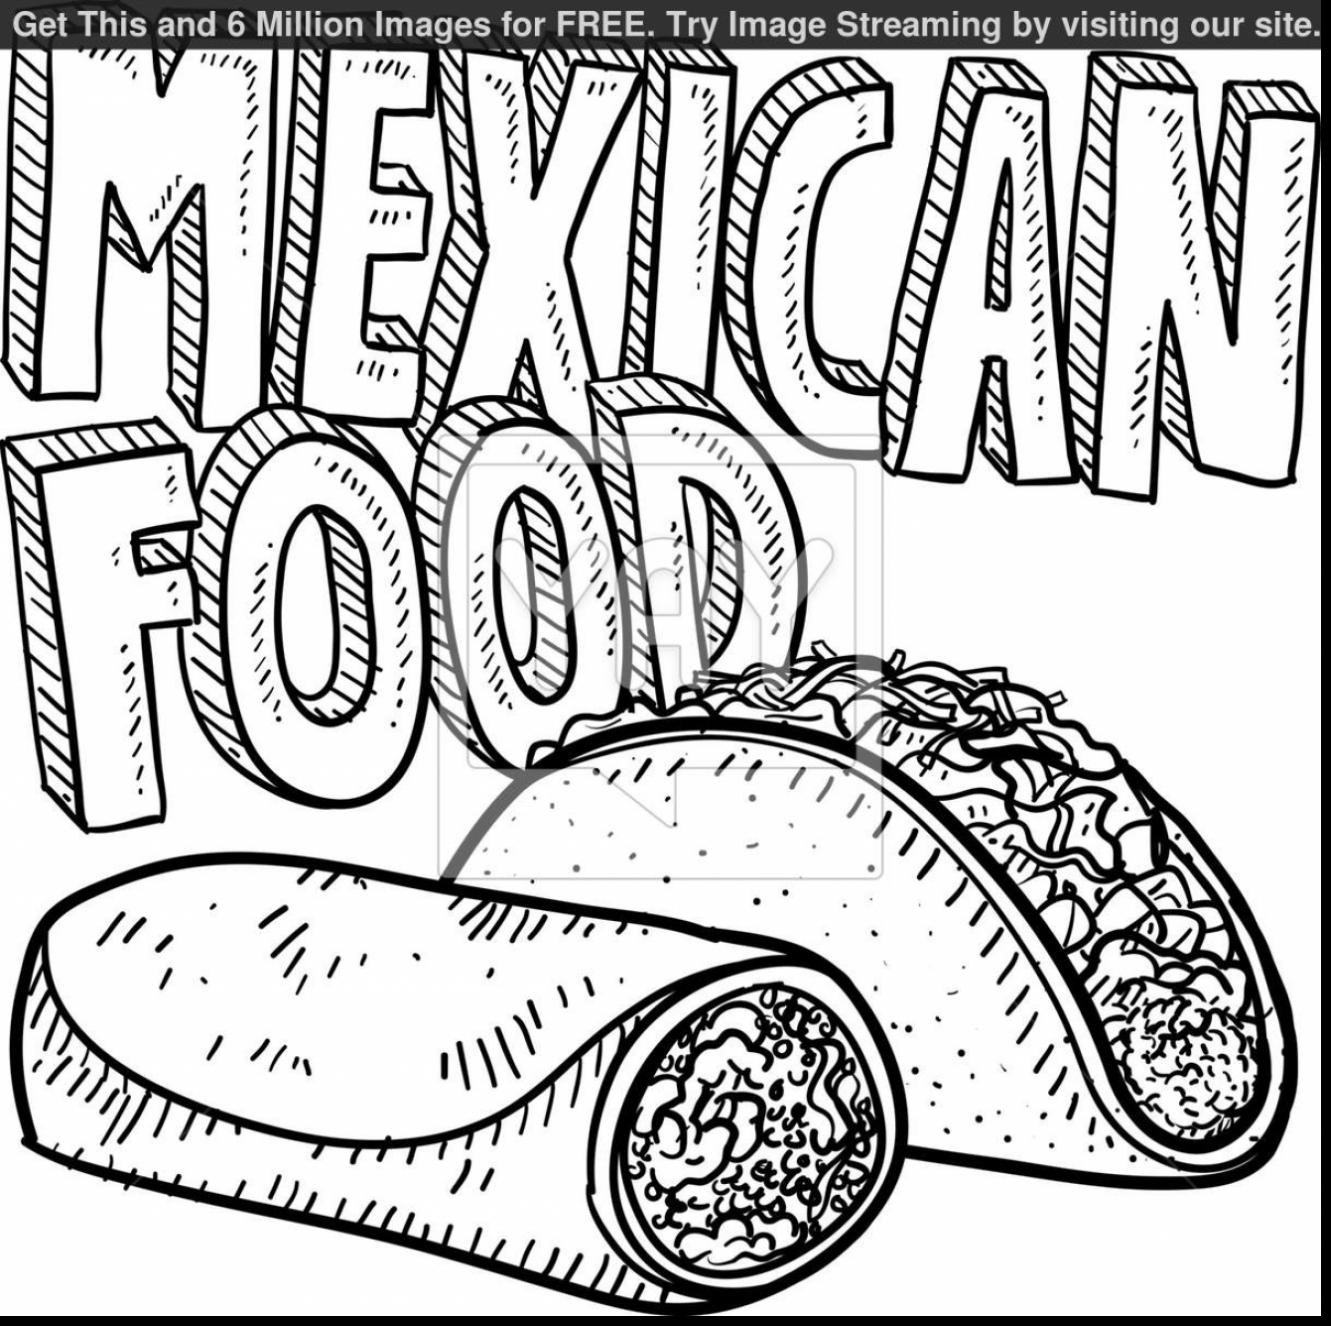 Mexico Coloring Pages At Getcolorings